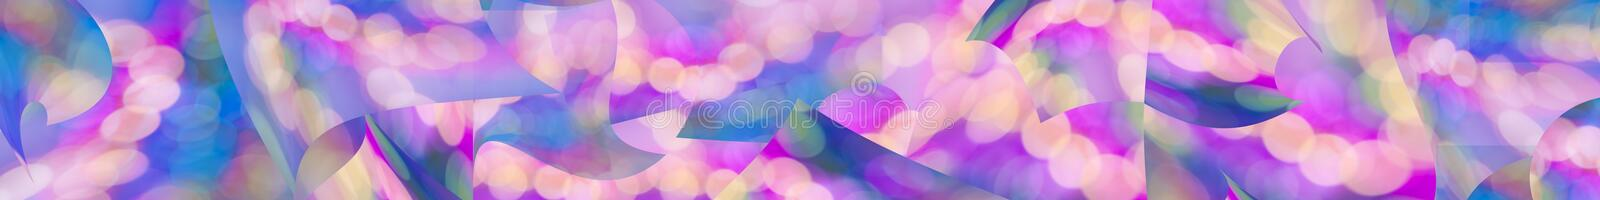 Download Colorful Abstract Panorama Web Banner Background Stock Illustration - Image: 12962551